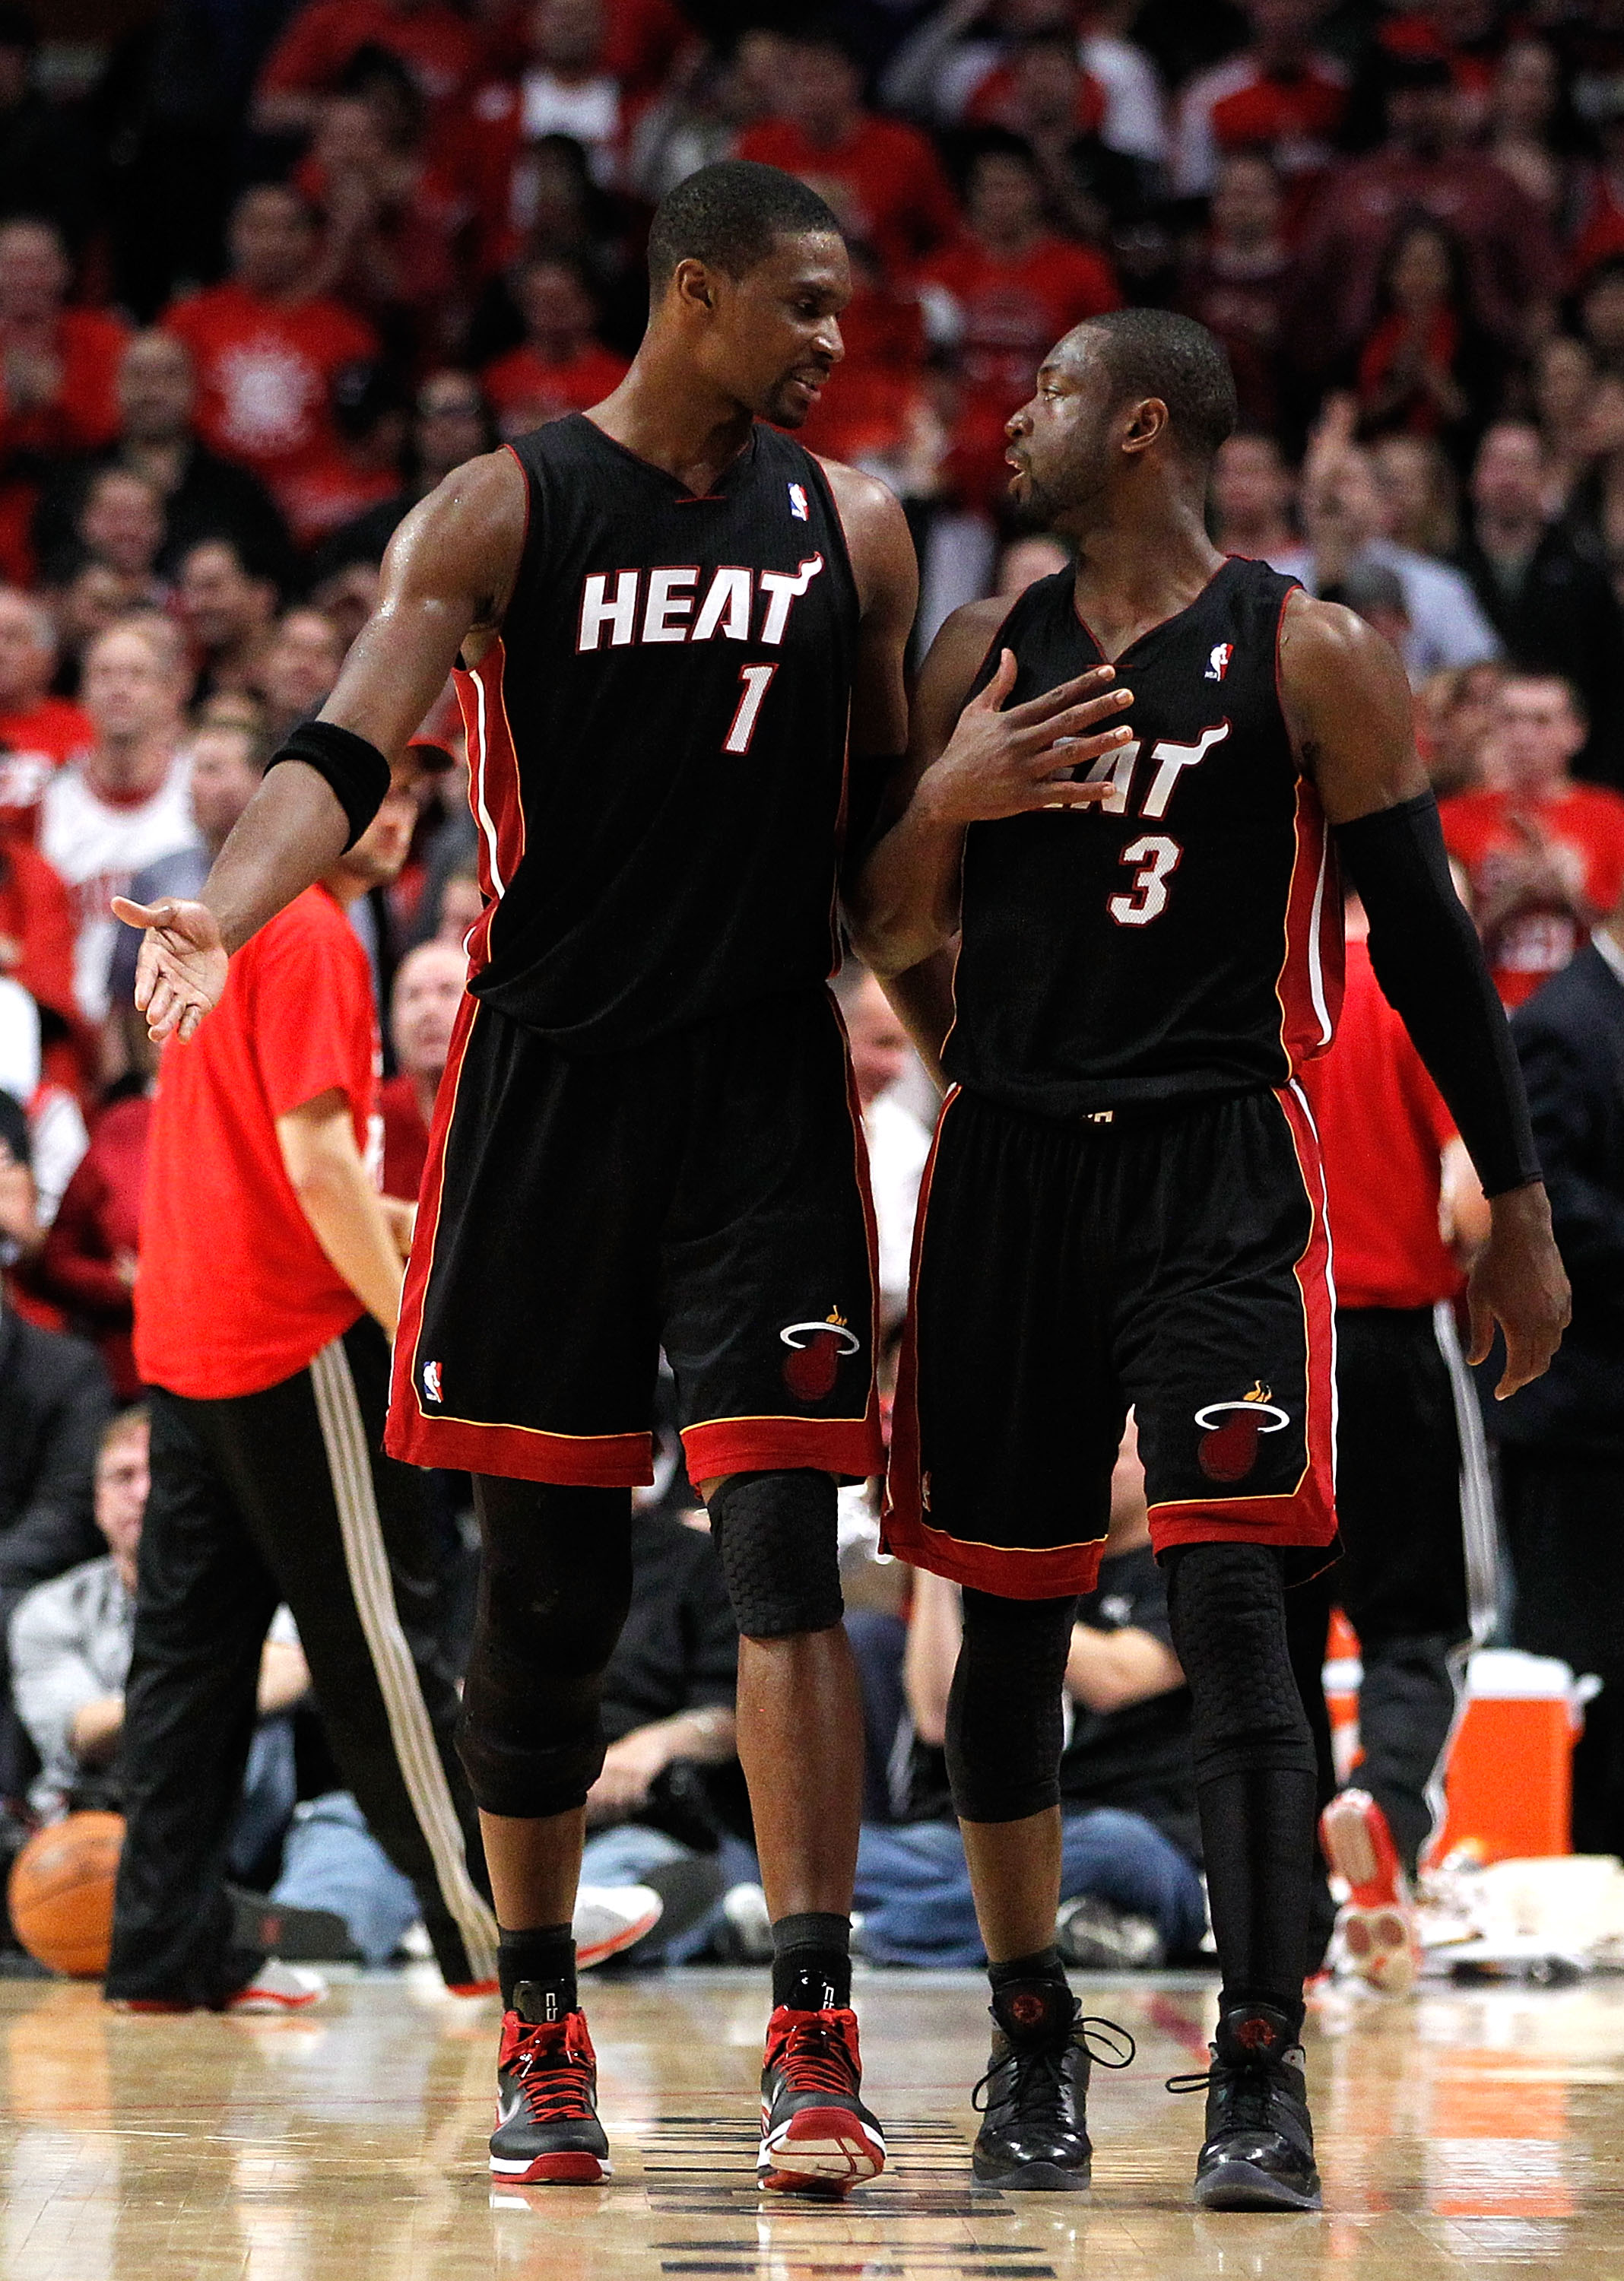 CHICAGO, IL - MAY 15: (L-R) Chris Bosh #1 and Dwyane Wade #3 of the Miami Heat talk on court against the Miami Heat in Game One of the Eastern Conference Finals during the 2011 NBA Playoffs on May 15, 2011 at the United Center in Chicago, Illinois. NOTE T